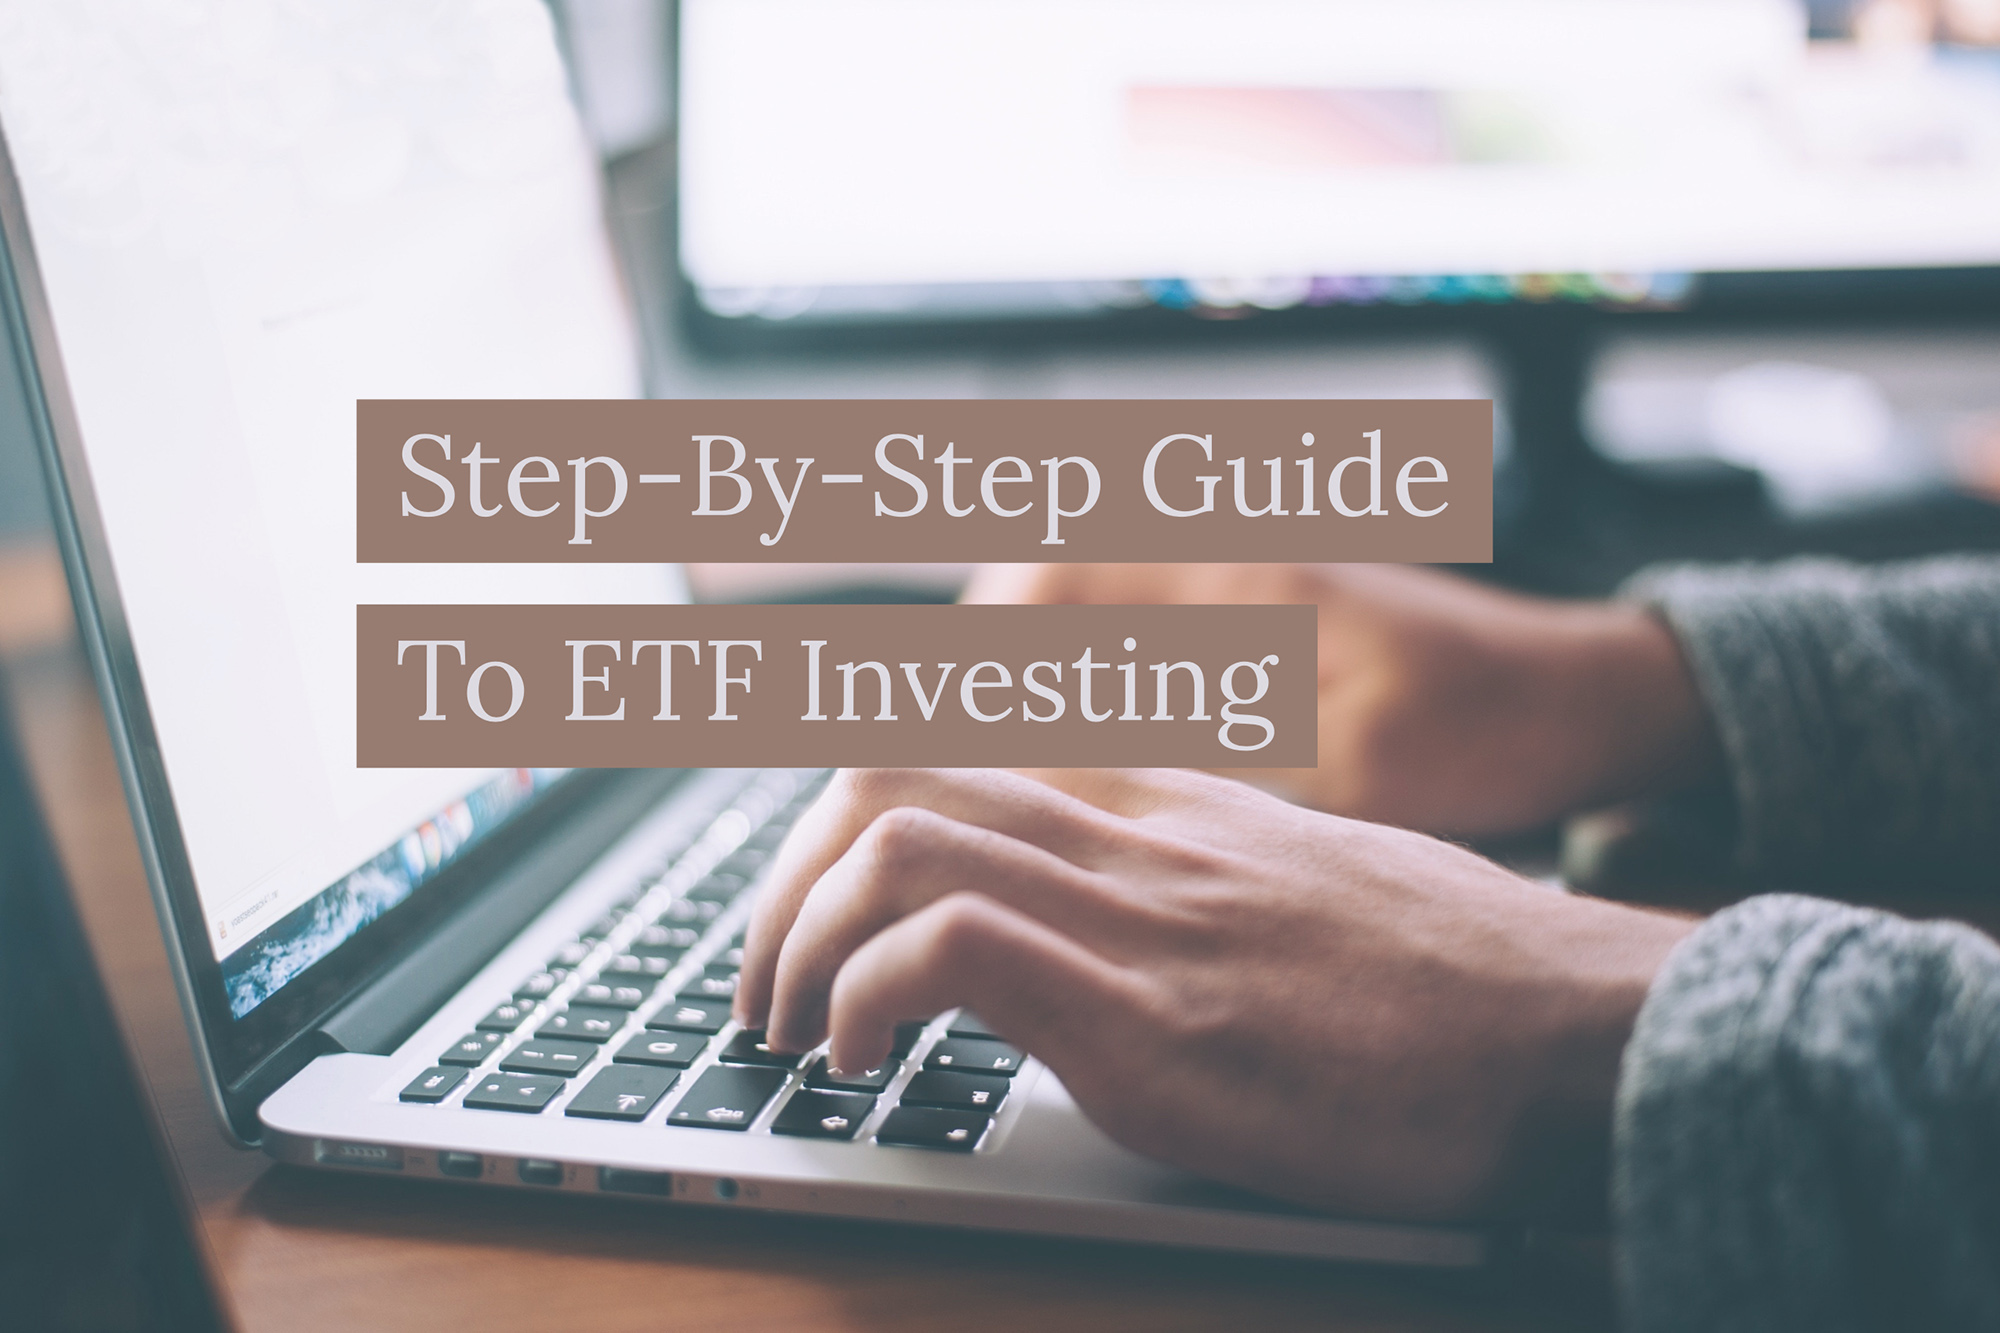 ddd9dde8957 Step-By-Step Guide To ETF Investing In Singapore